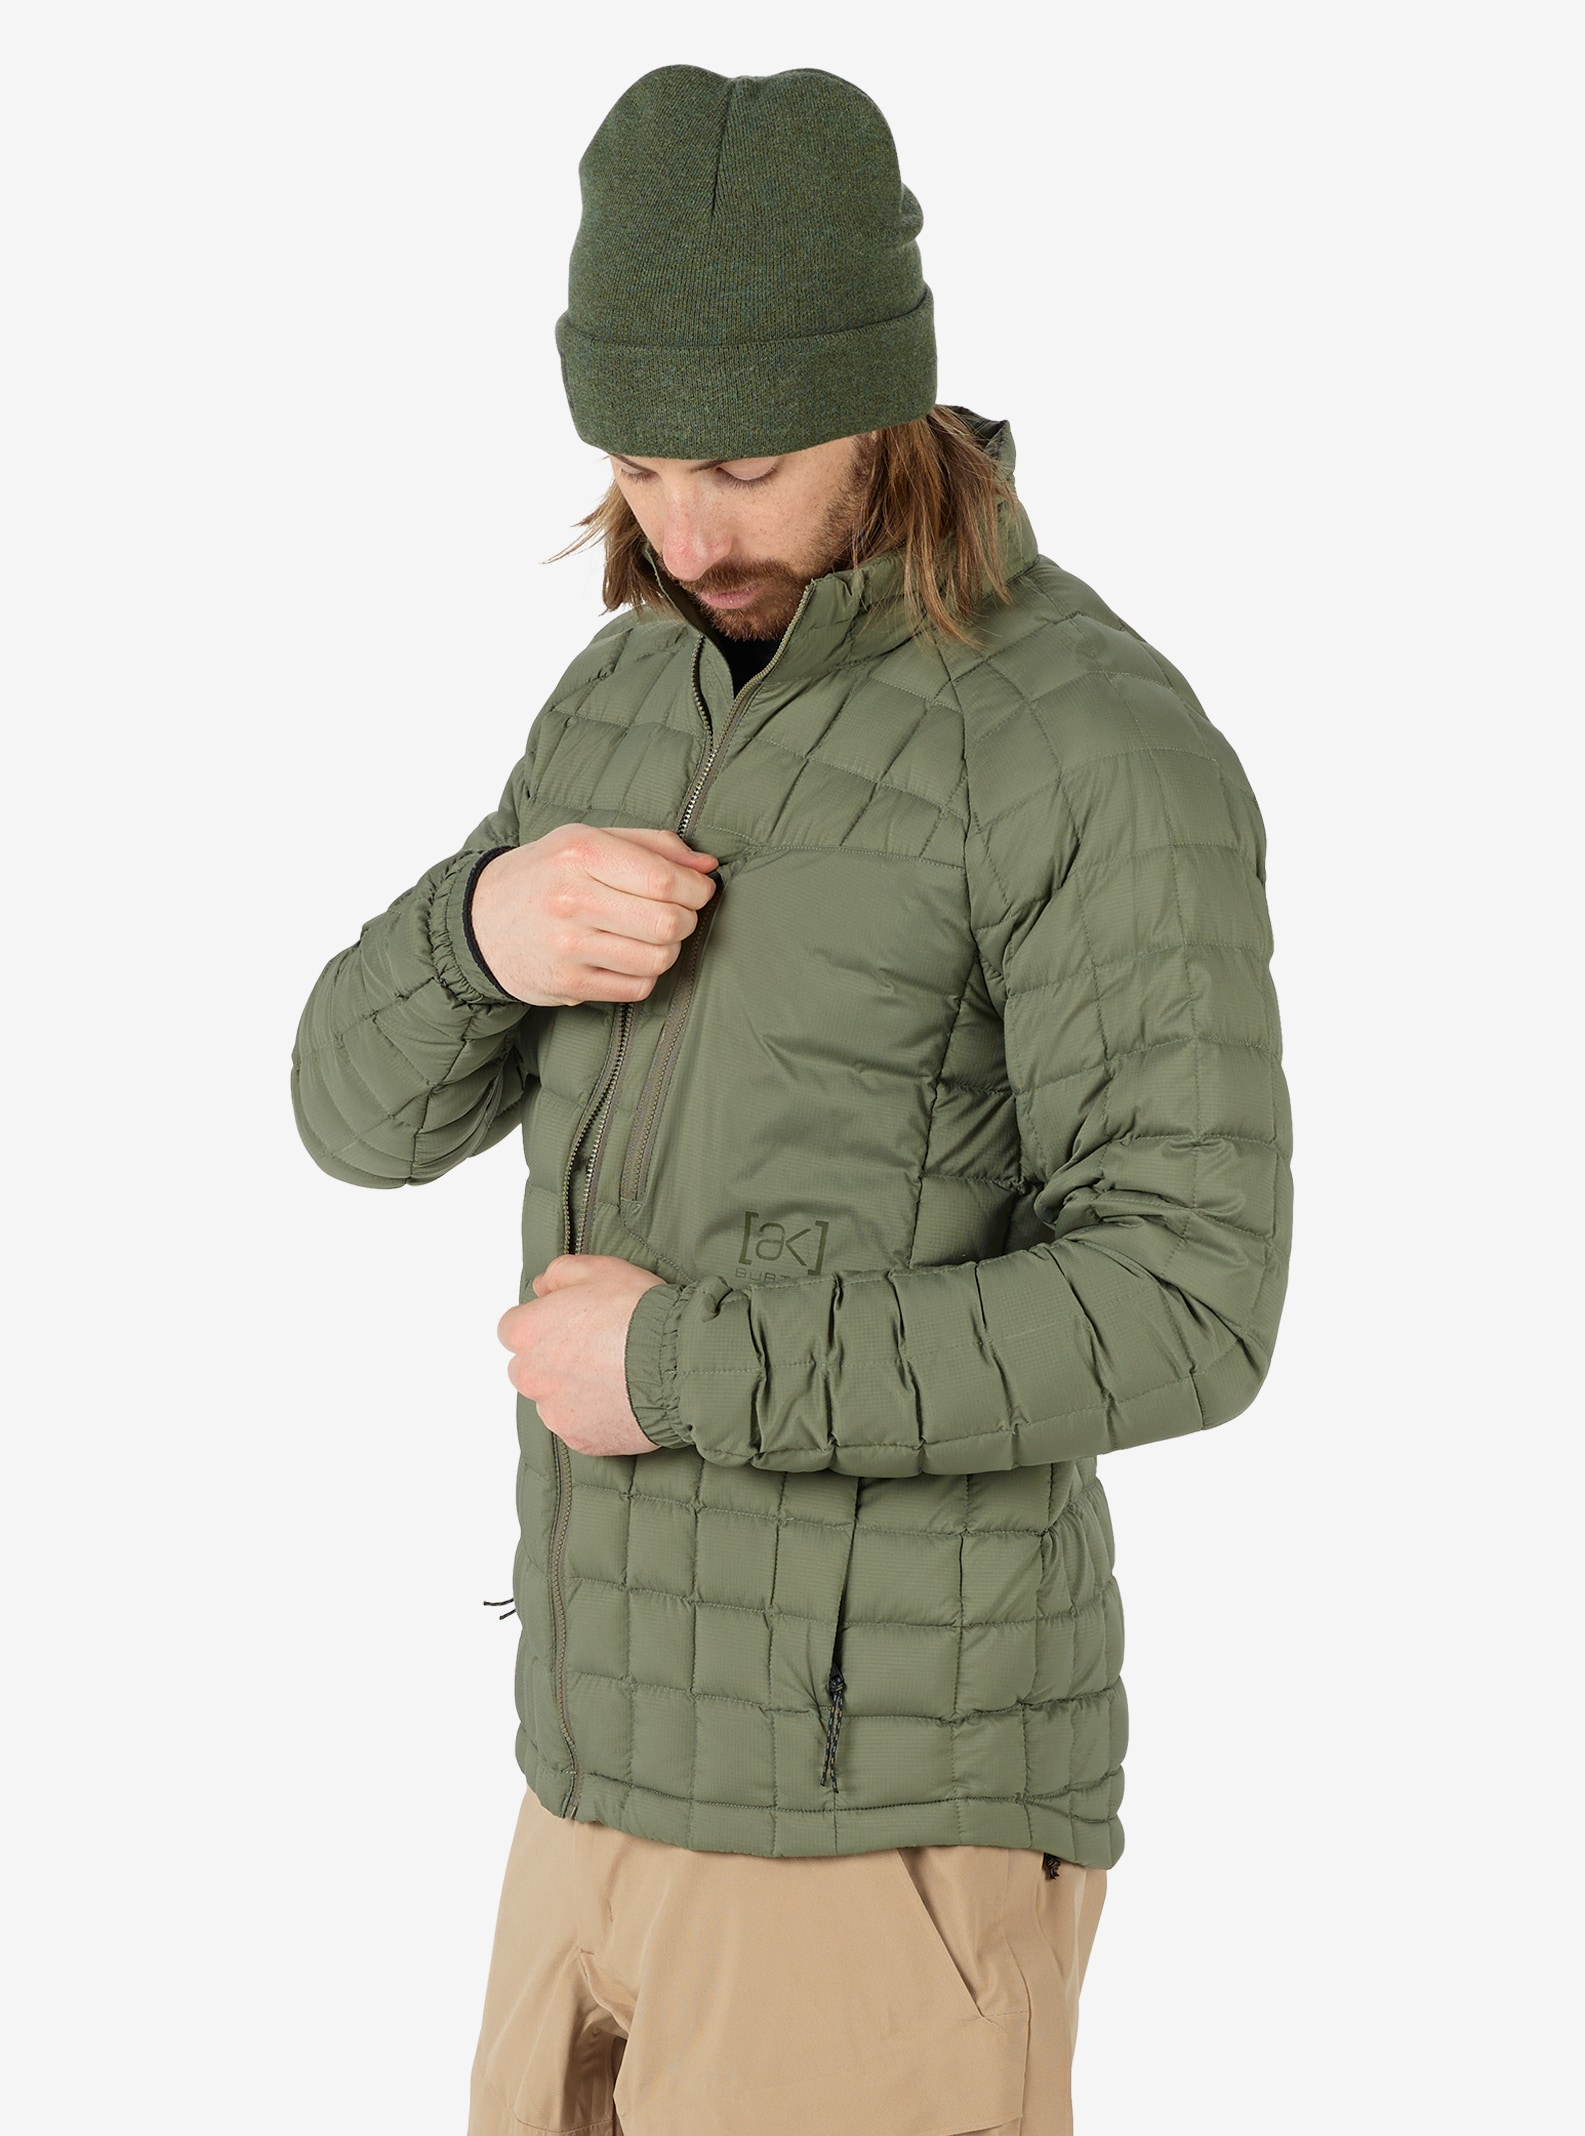 Men's Burton [ak] BK Lite Insulator shown in Dusty Olive